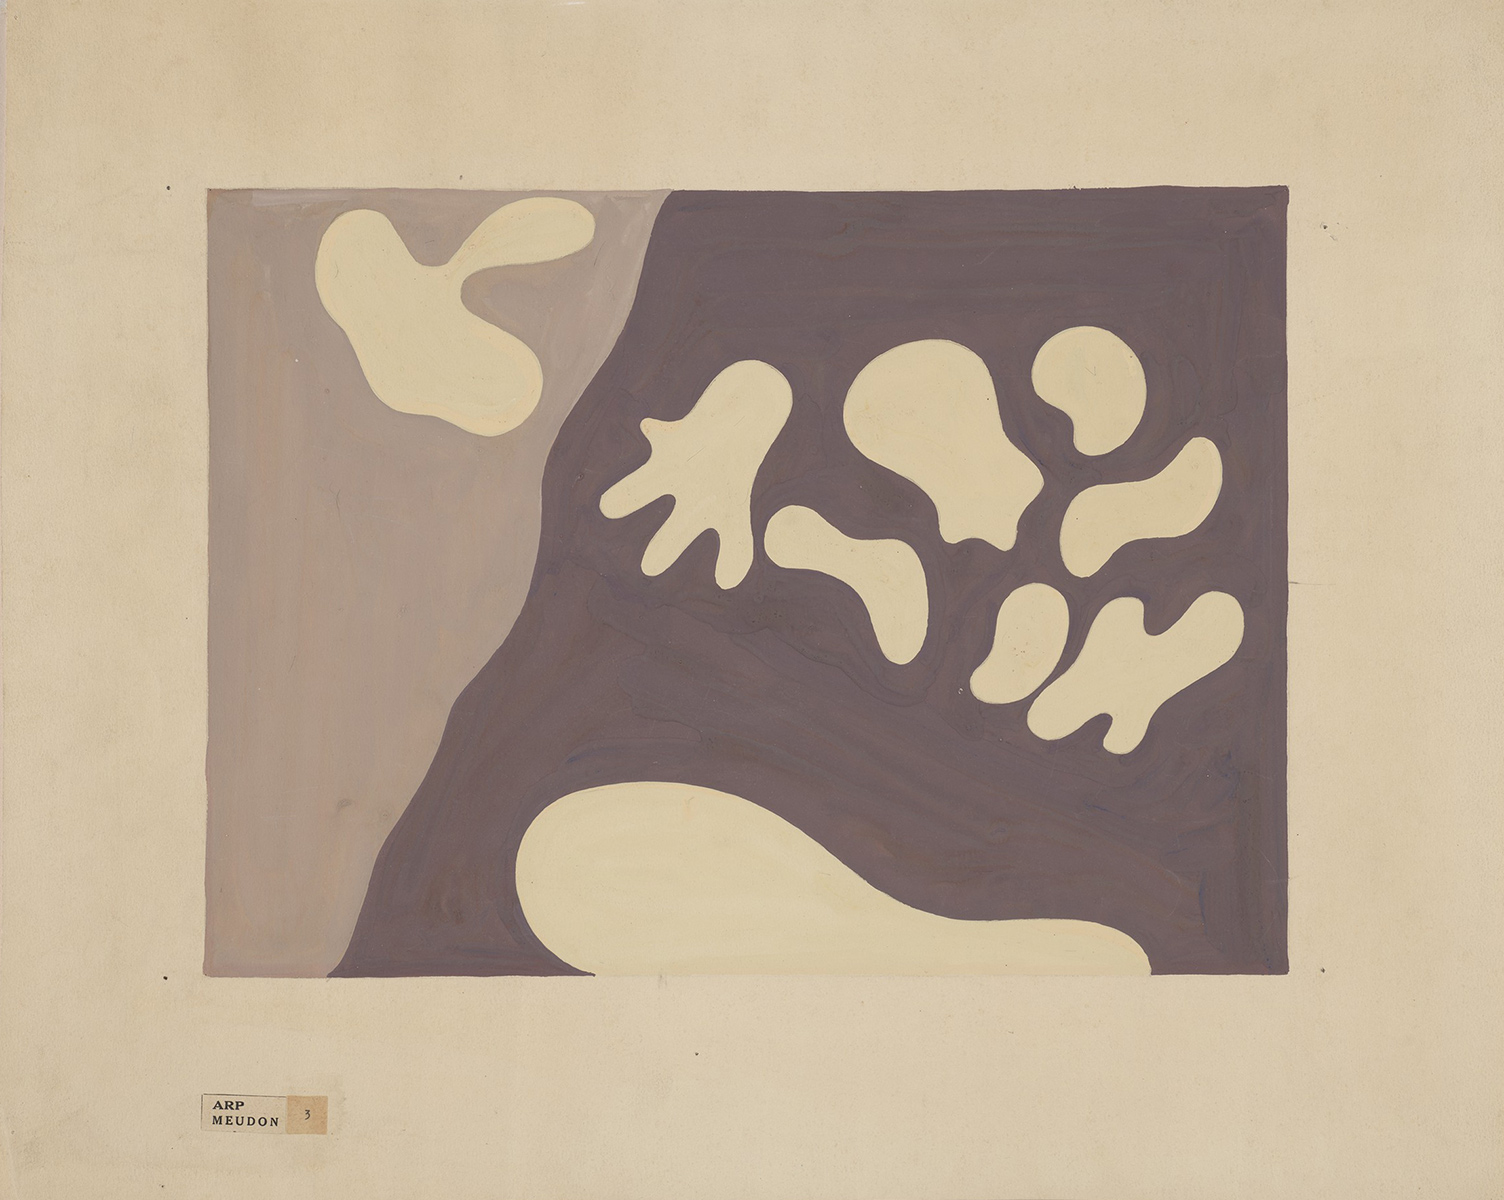 Hans Arp, French, Abstraction, 1950. Opaque watercolor on cream wove paper. Harvard Art Museums/Fogg Museum, Transfer from the Harvard Corporation, 1951.120.